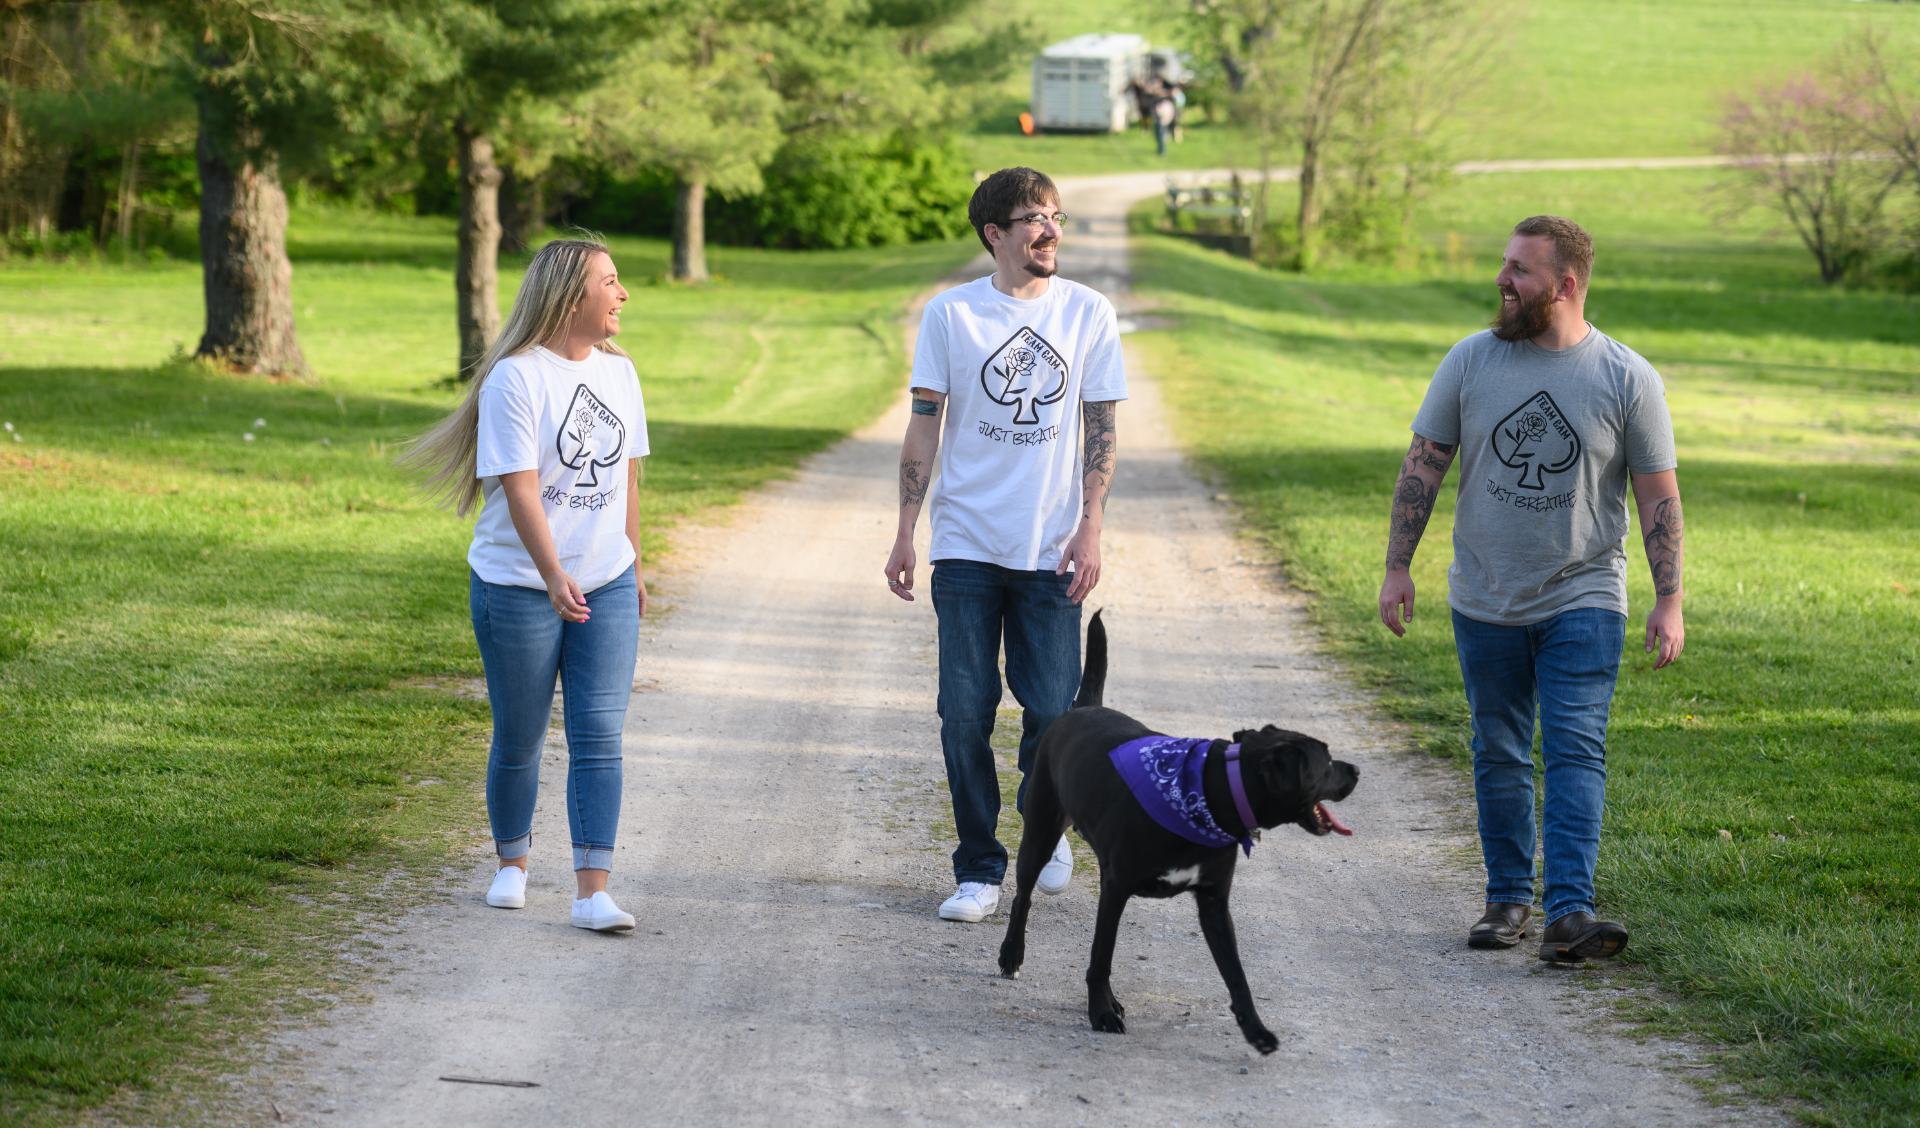 Cameron stands in between his friend Charlie, a white adult male with brown hair, and his fiance, Michelle, a white adult female with blonde hair. They are all wearing short sleeved specially designed 'Team Cam' shirts with a pair of jeans, while the dog walks ahead of them.